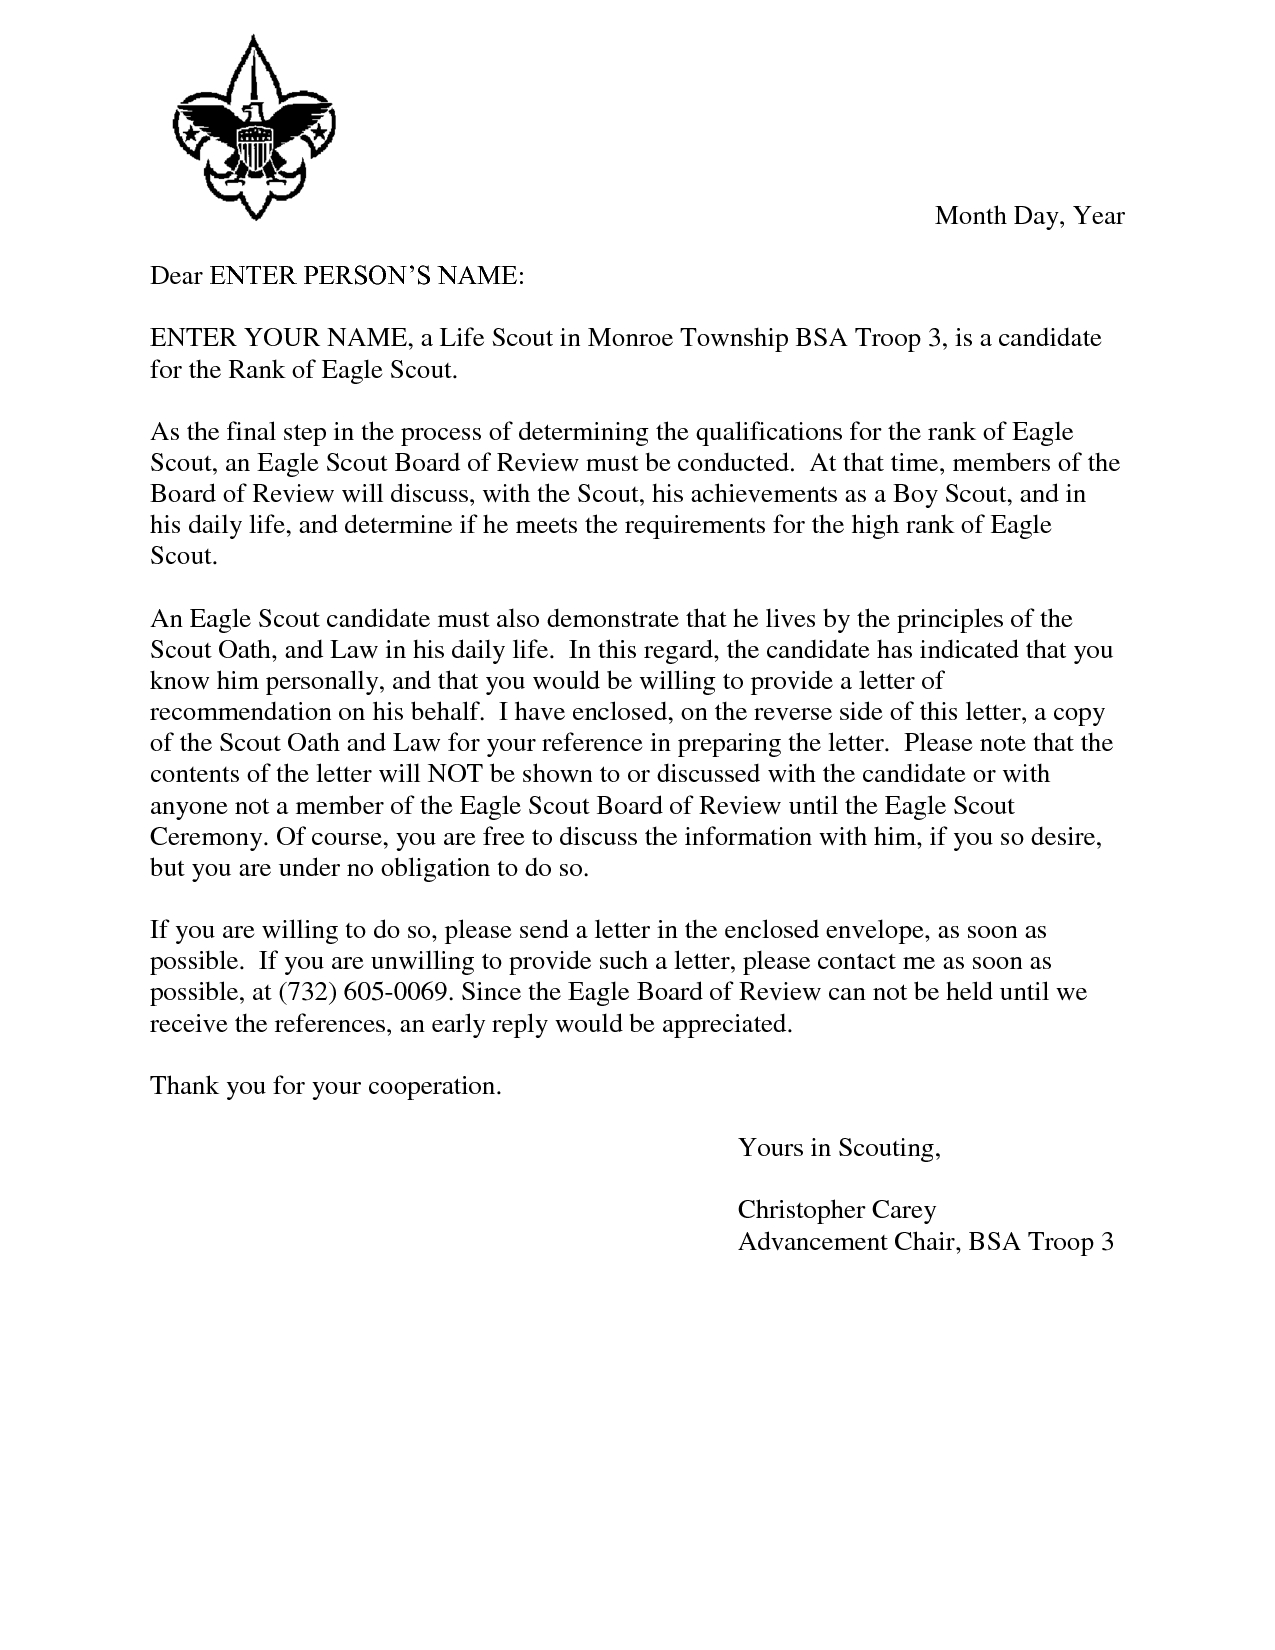 Letter asking for Donations Template - Eagle Scout Reference Request Sample Letter Doc 7 by Hfr990q